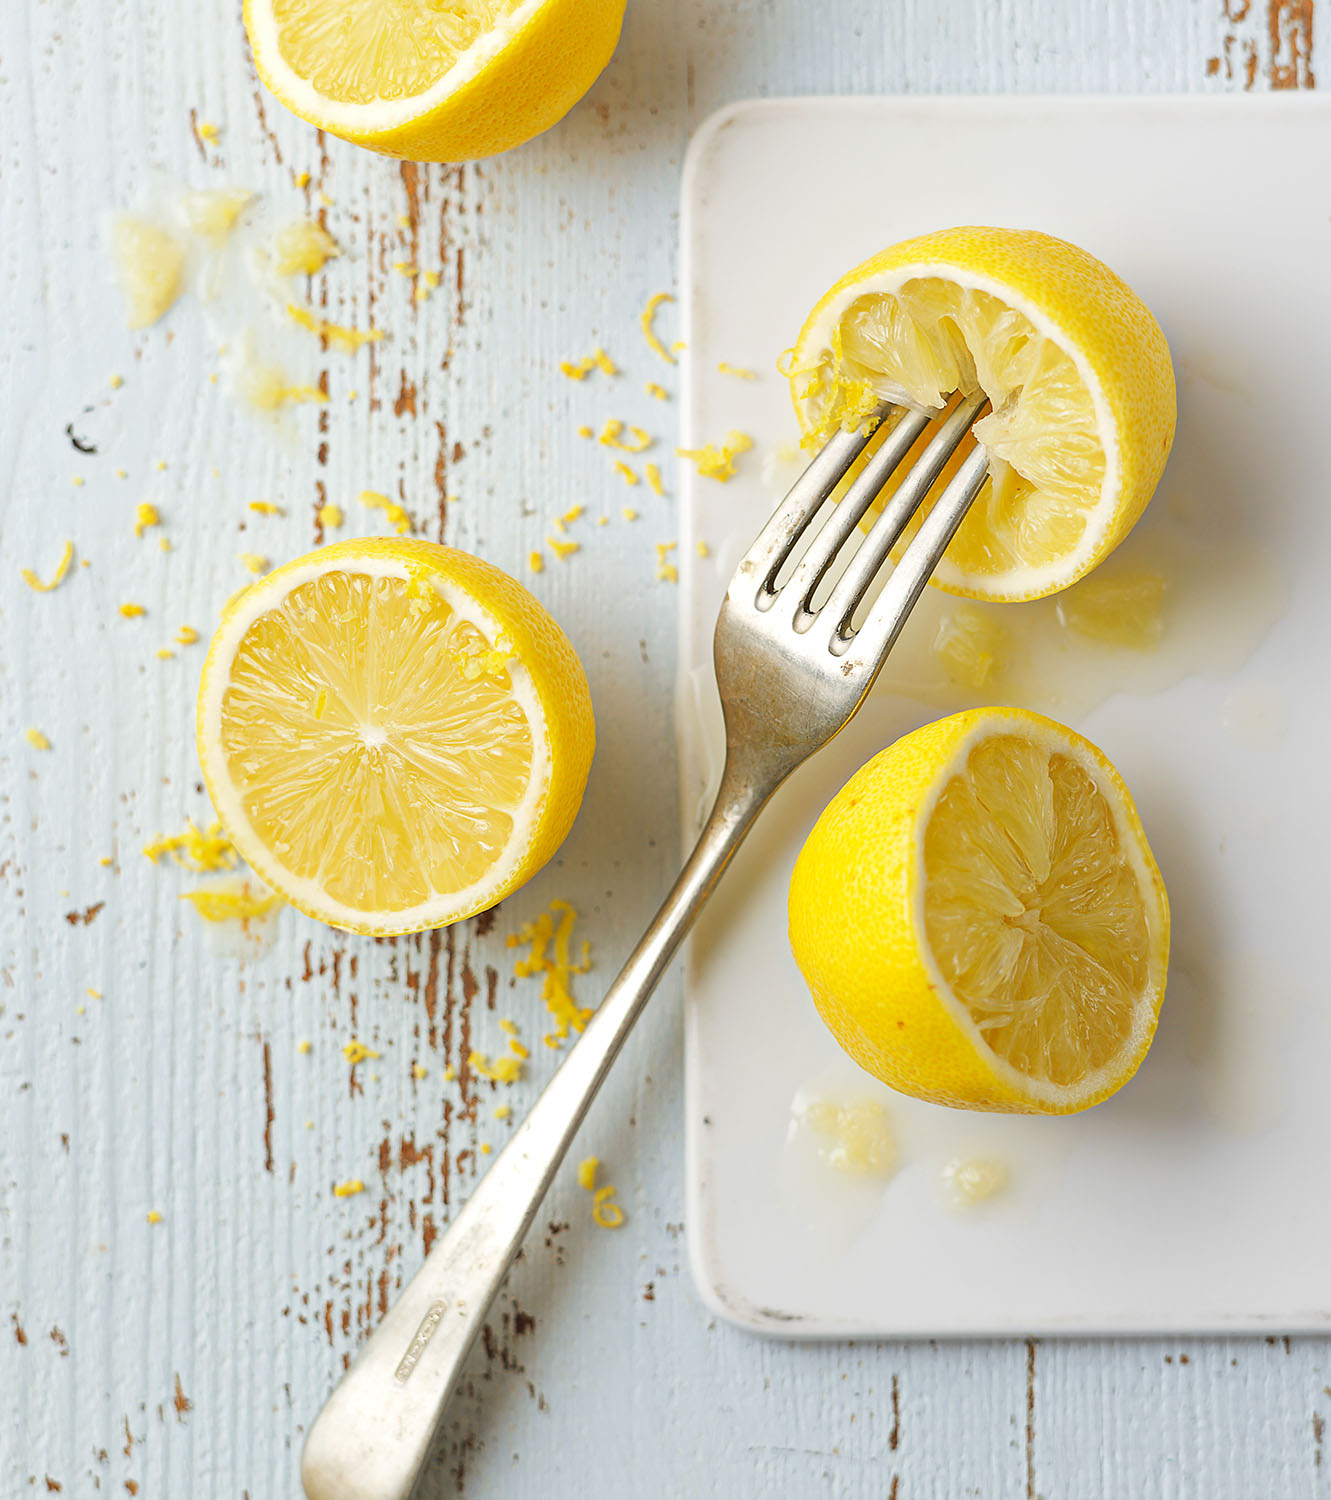 Food Photography Photographer London UK Lemon